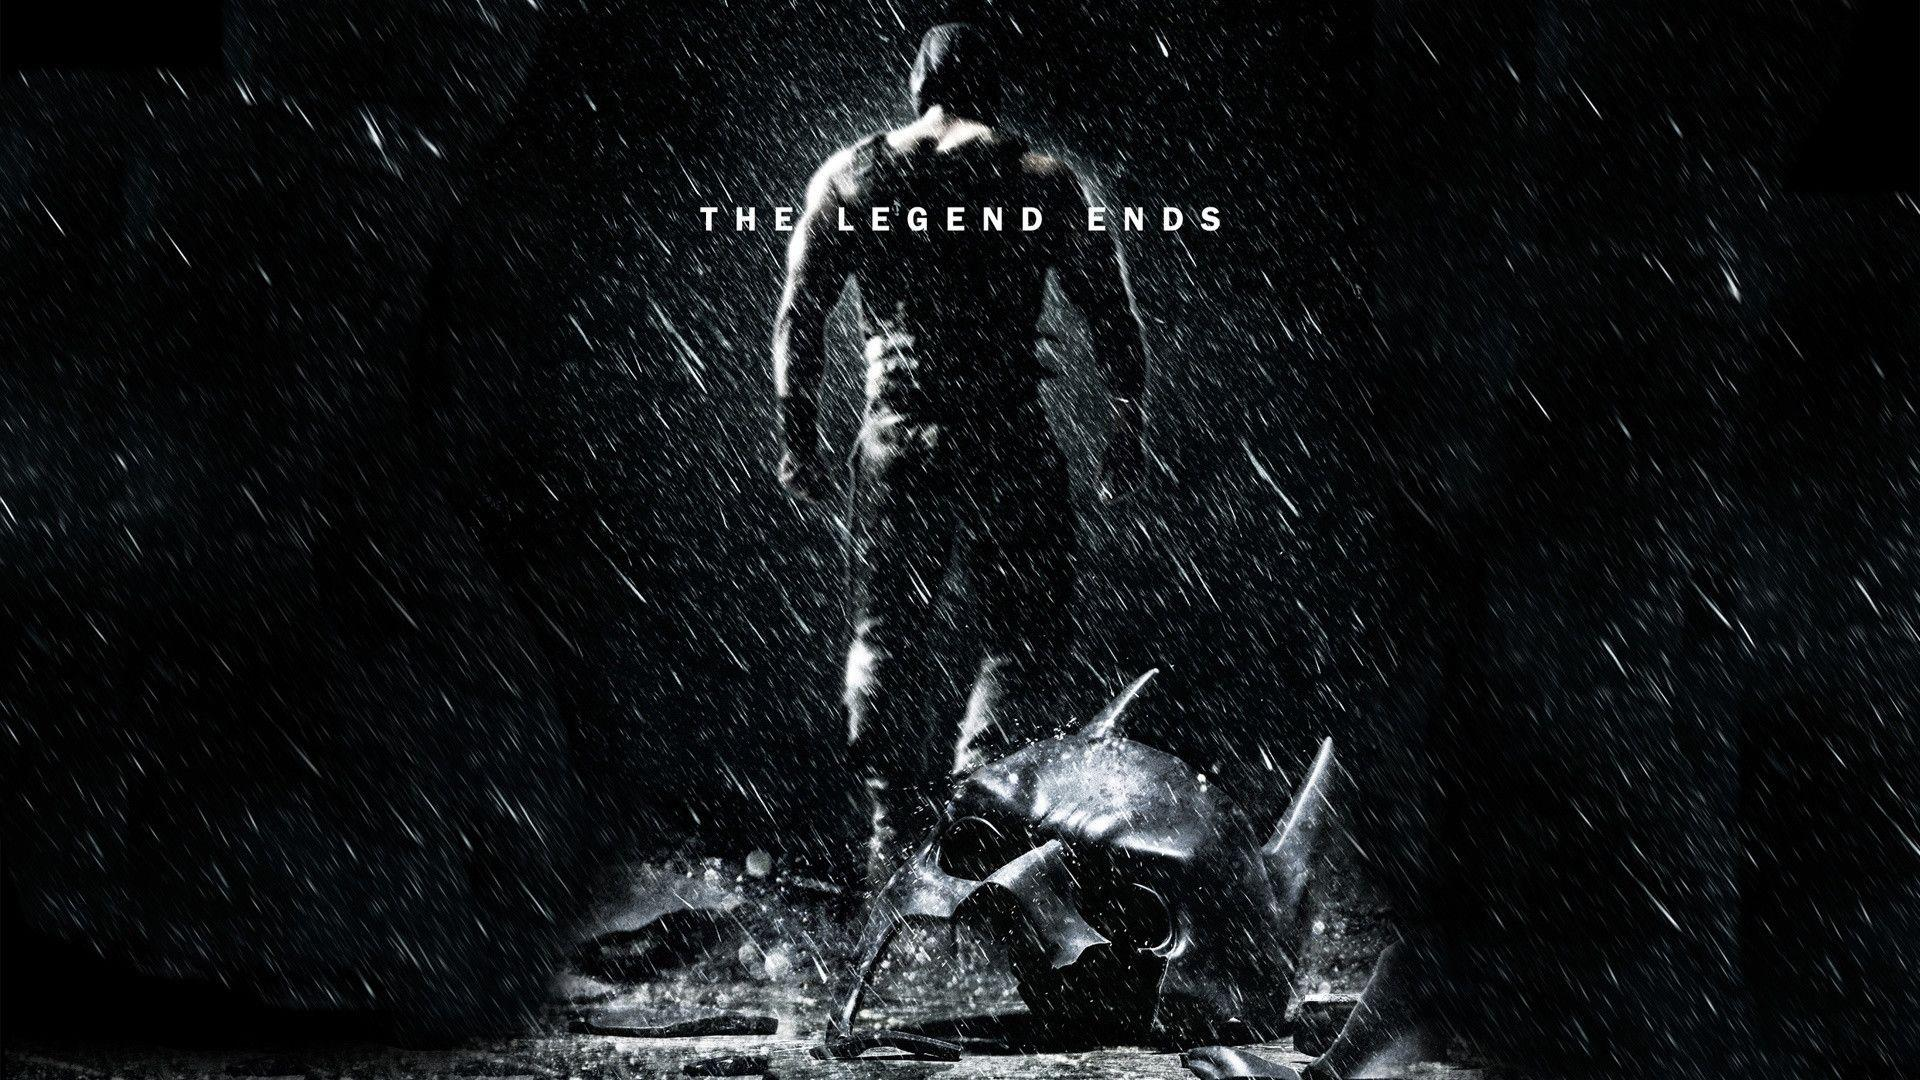 The Dark Knight Rises Wallpapers 1920x1080 - Wallpaper Cave